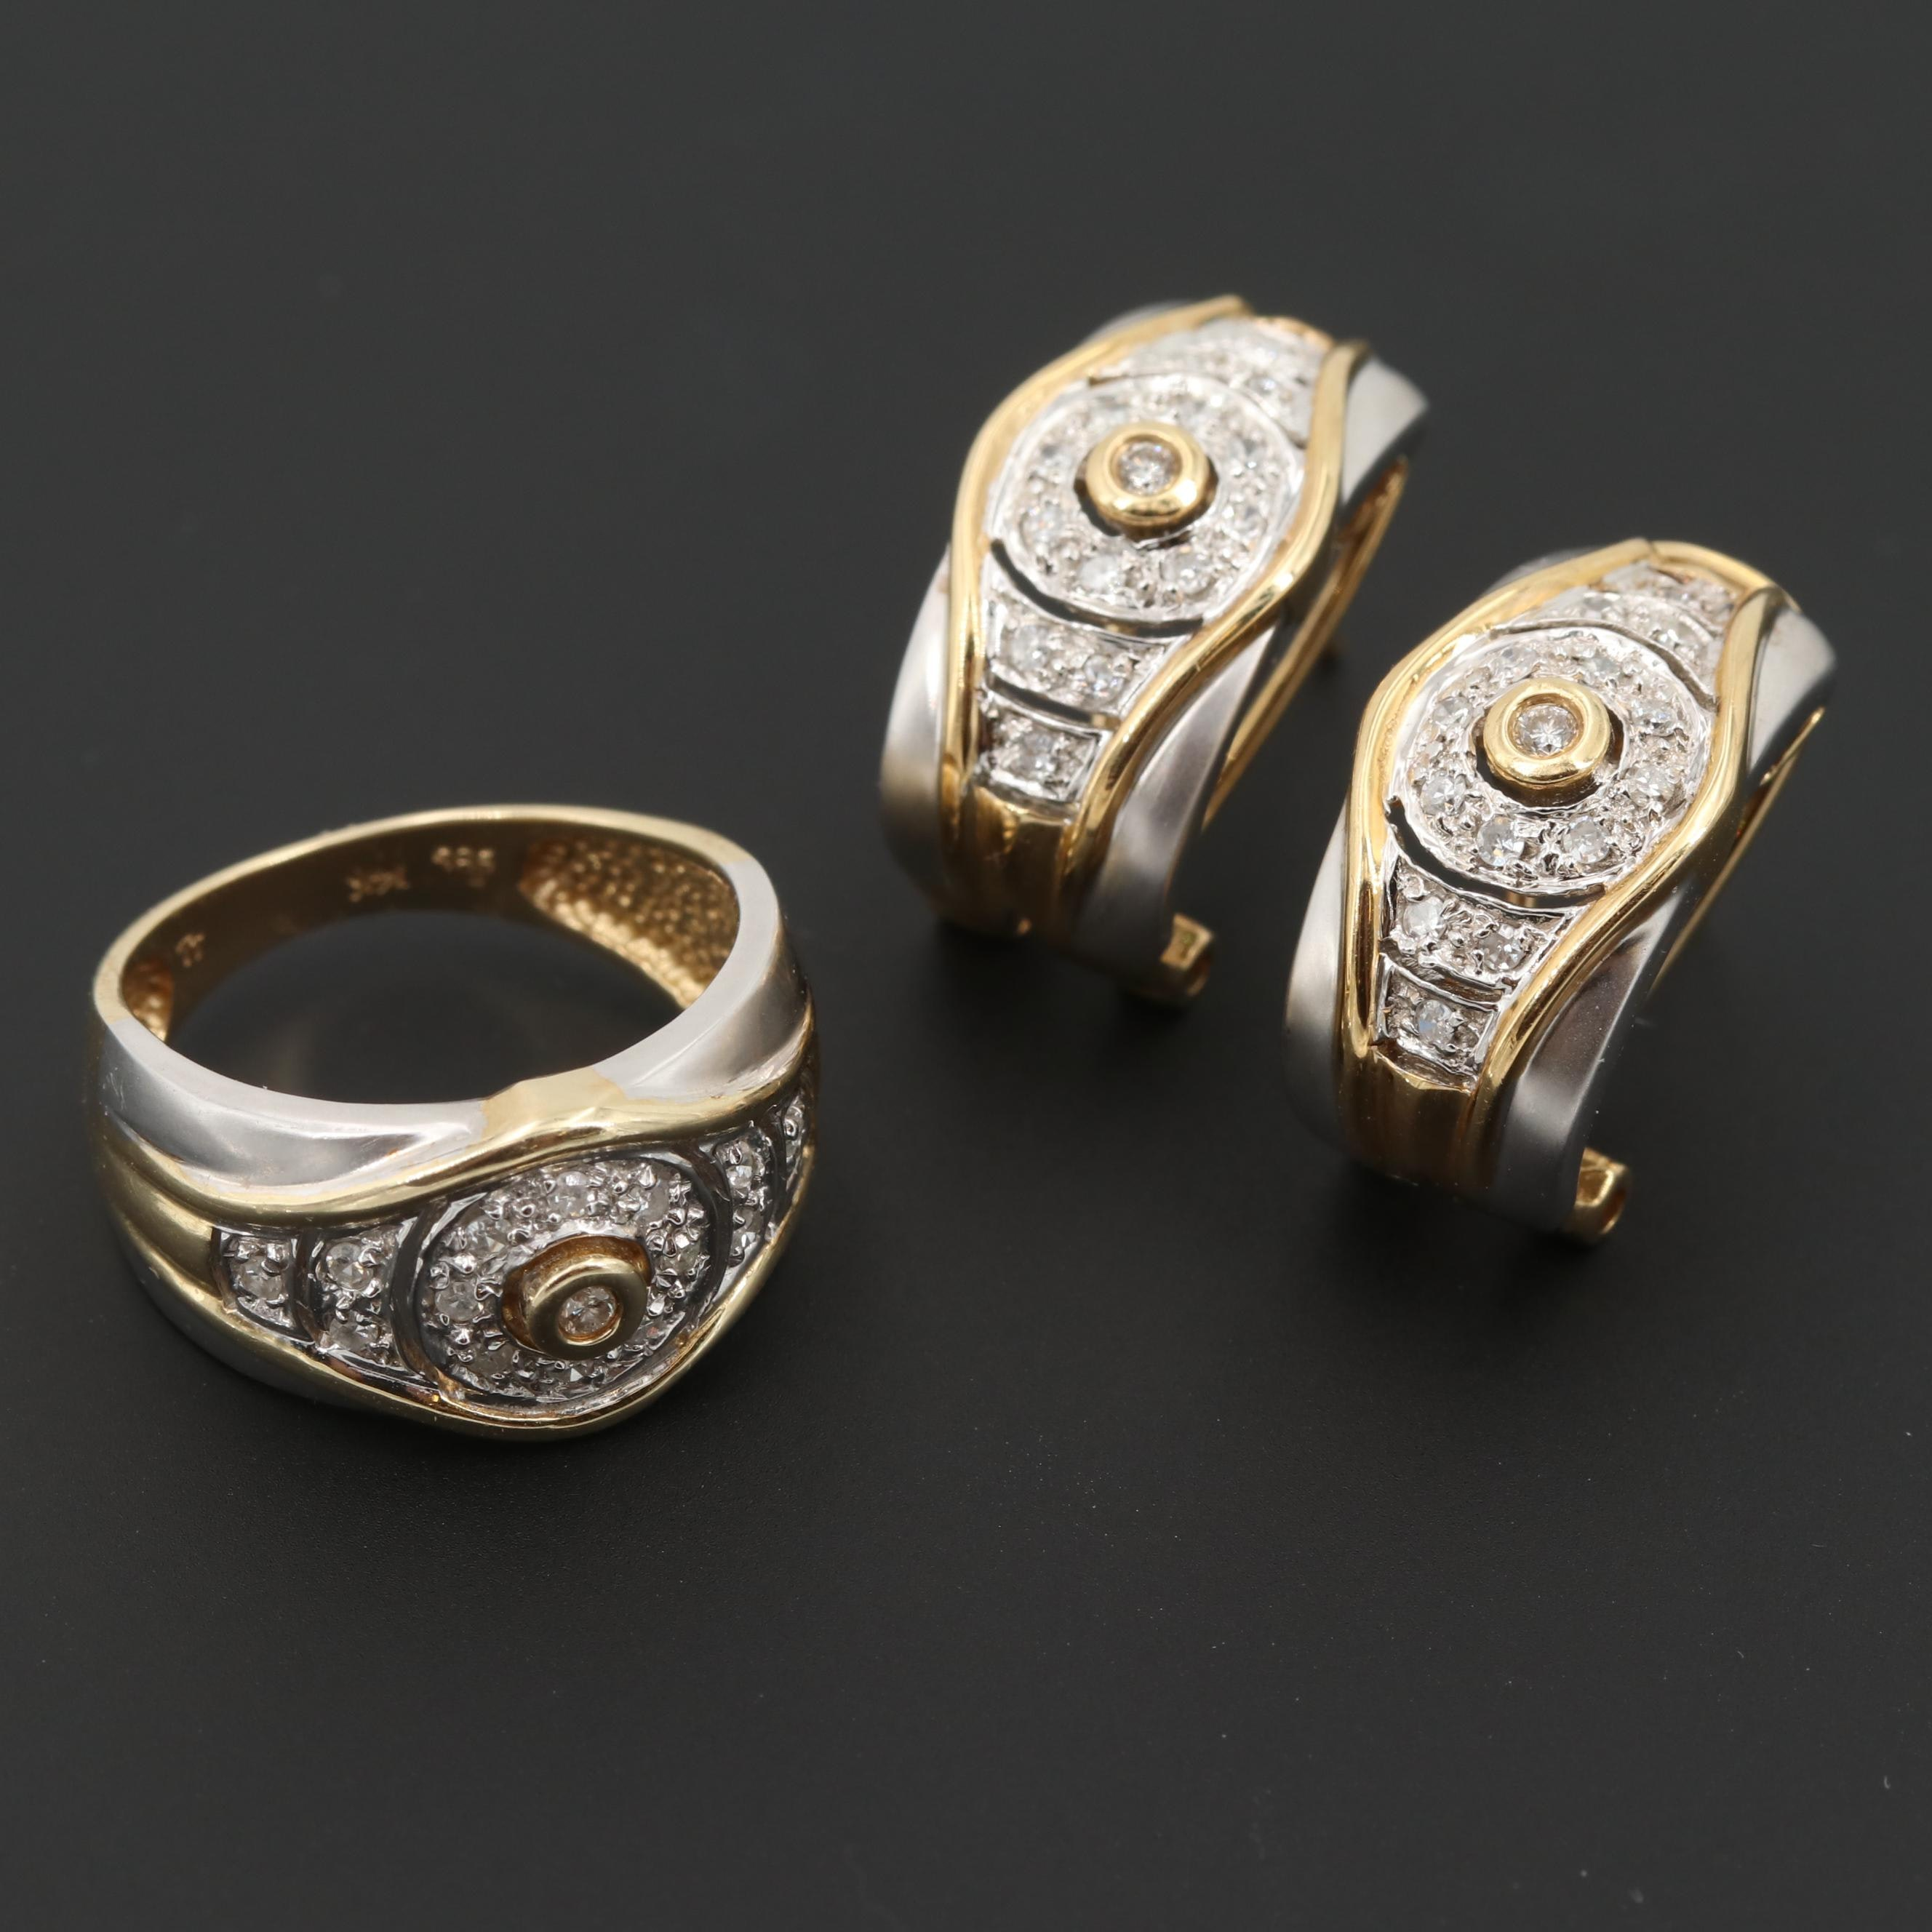 14K White Gold Diamond Earrings and Ring with Yellow Gold Accents